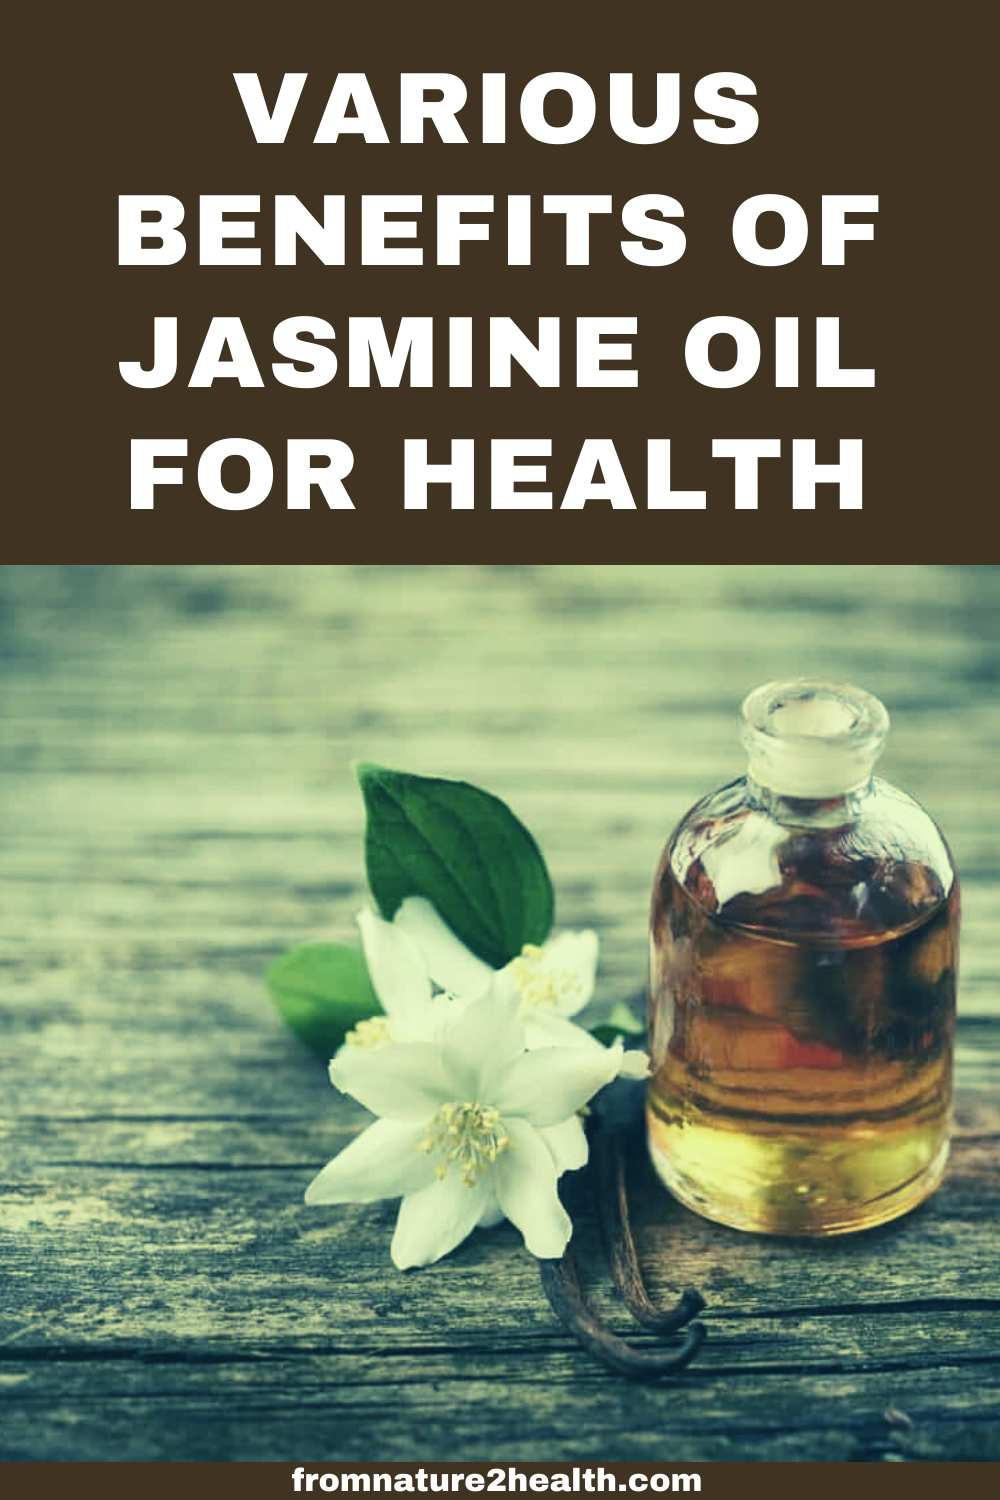 Various Benefits of Jasmine Oil for Health